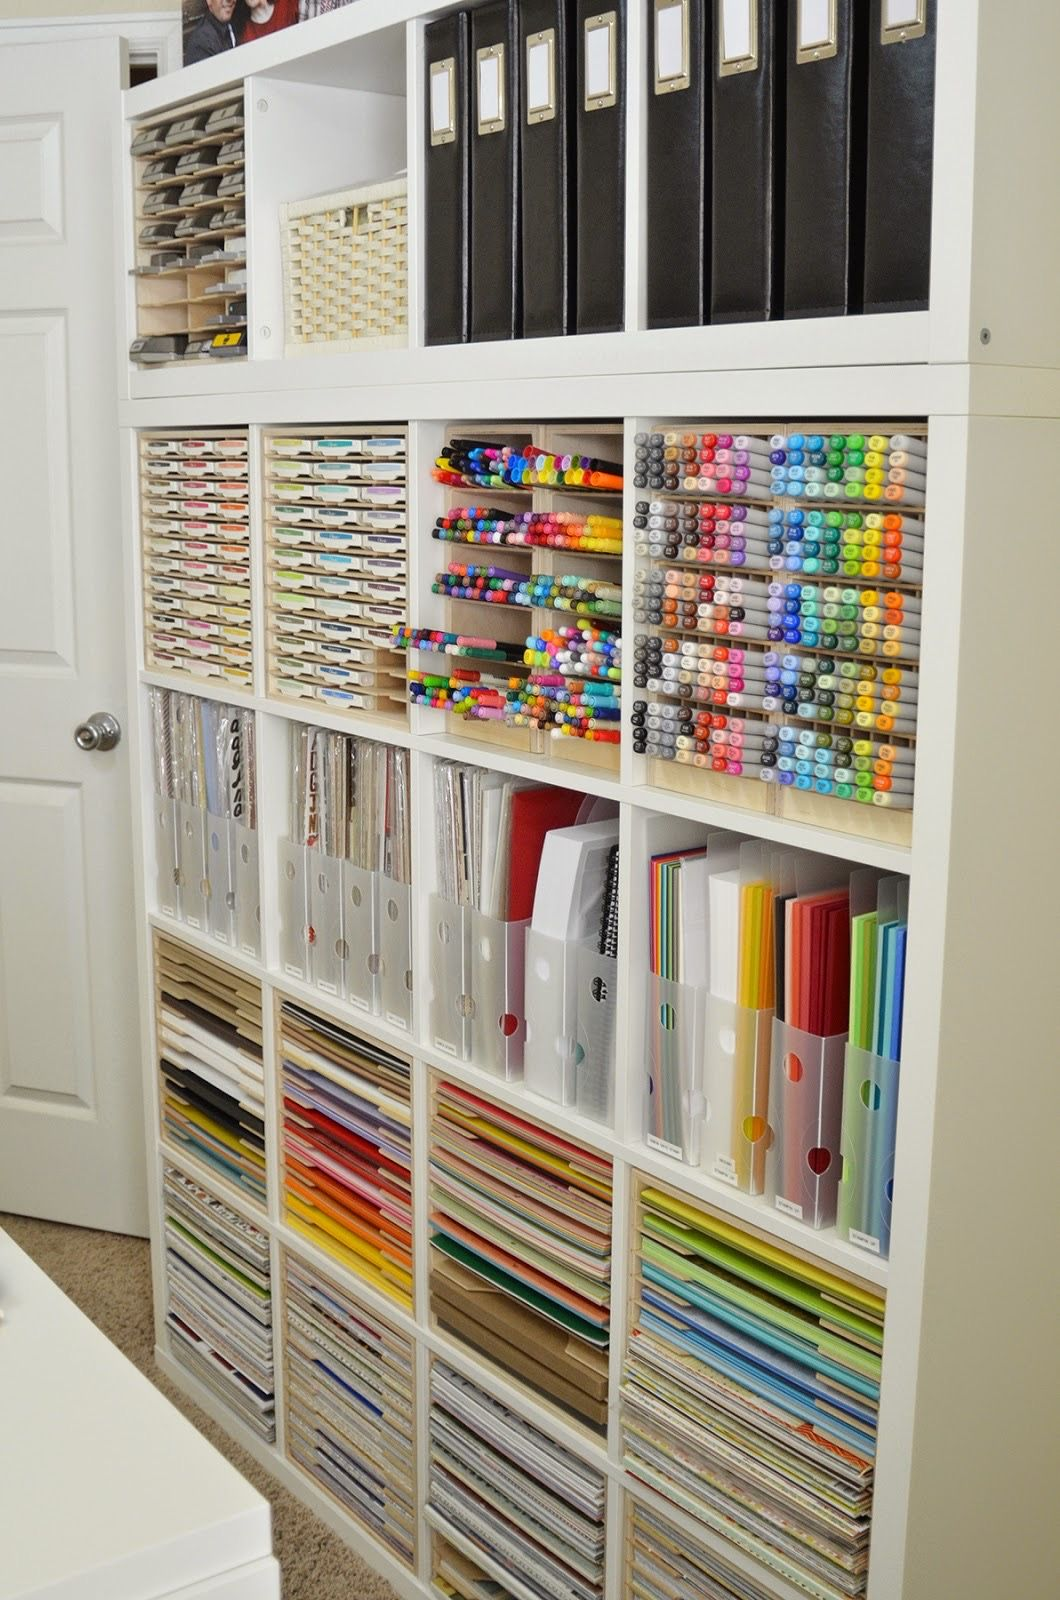 Rangement Atelier Bricolage Craft Room Organisation Using Ikea Kallax Love The Pen Storage